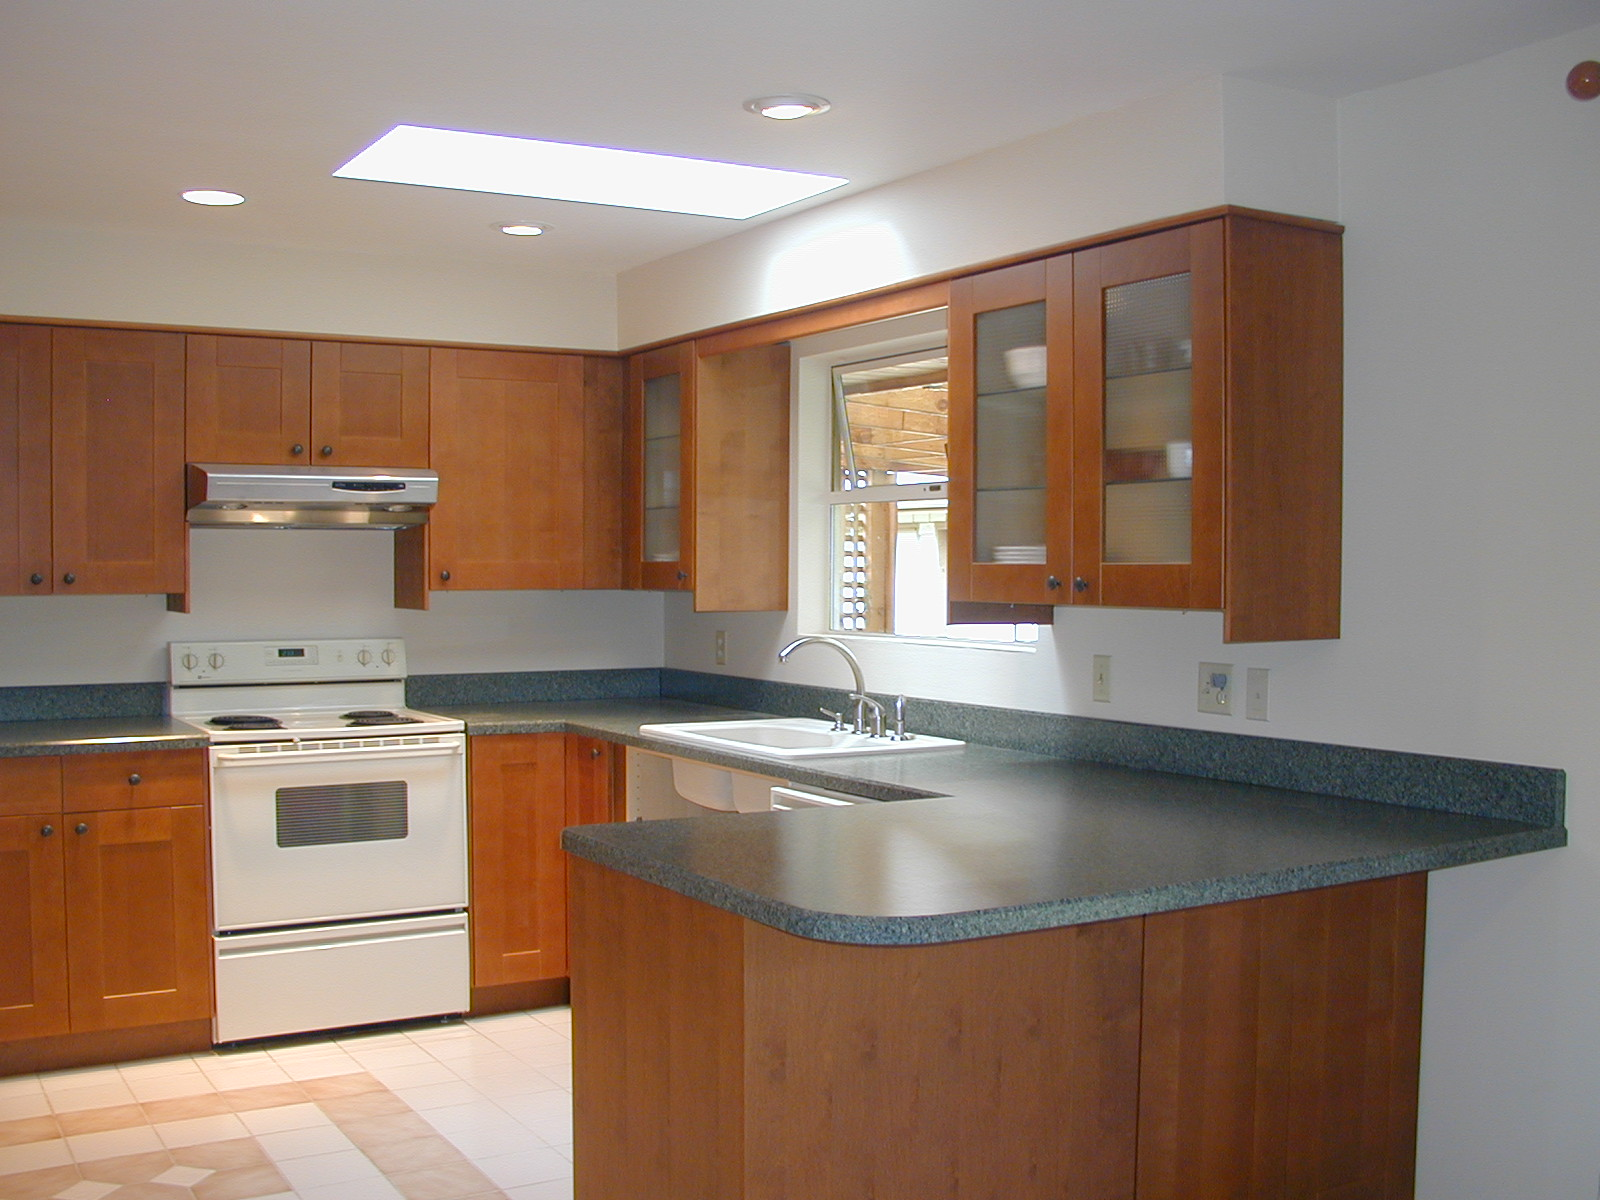 Laminate Kitchen Backsplash Replacing Kithchen Countertops Do I Have To Replace The